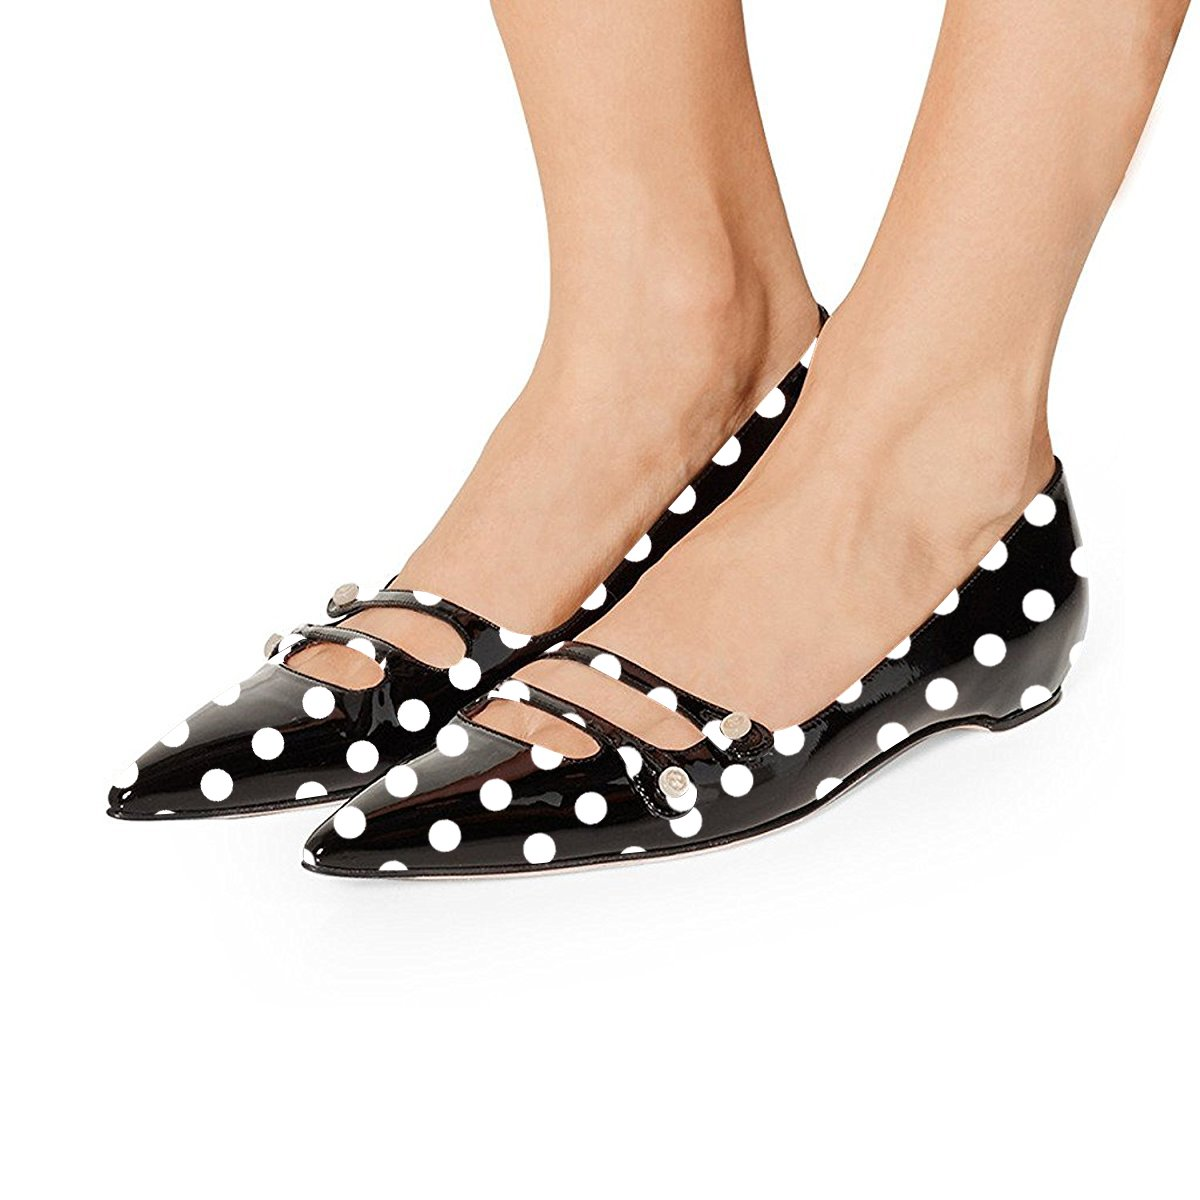 YDN Women Pointed Toe Slip on Flats Hidden Low Heels Pumps Comfort Shoes with Straps B07DKWCK75 8 M US|Black Polka Dot